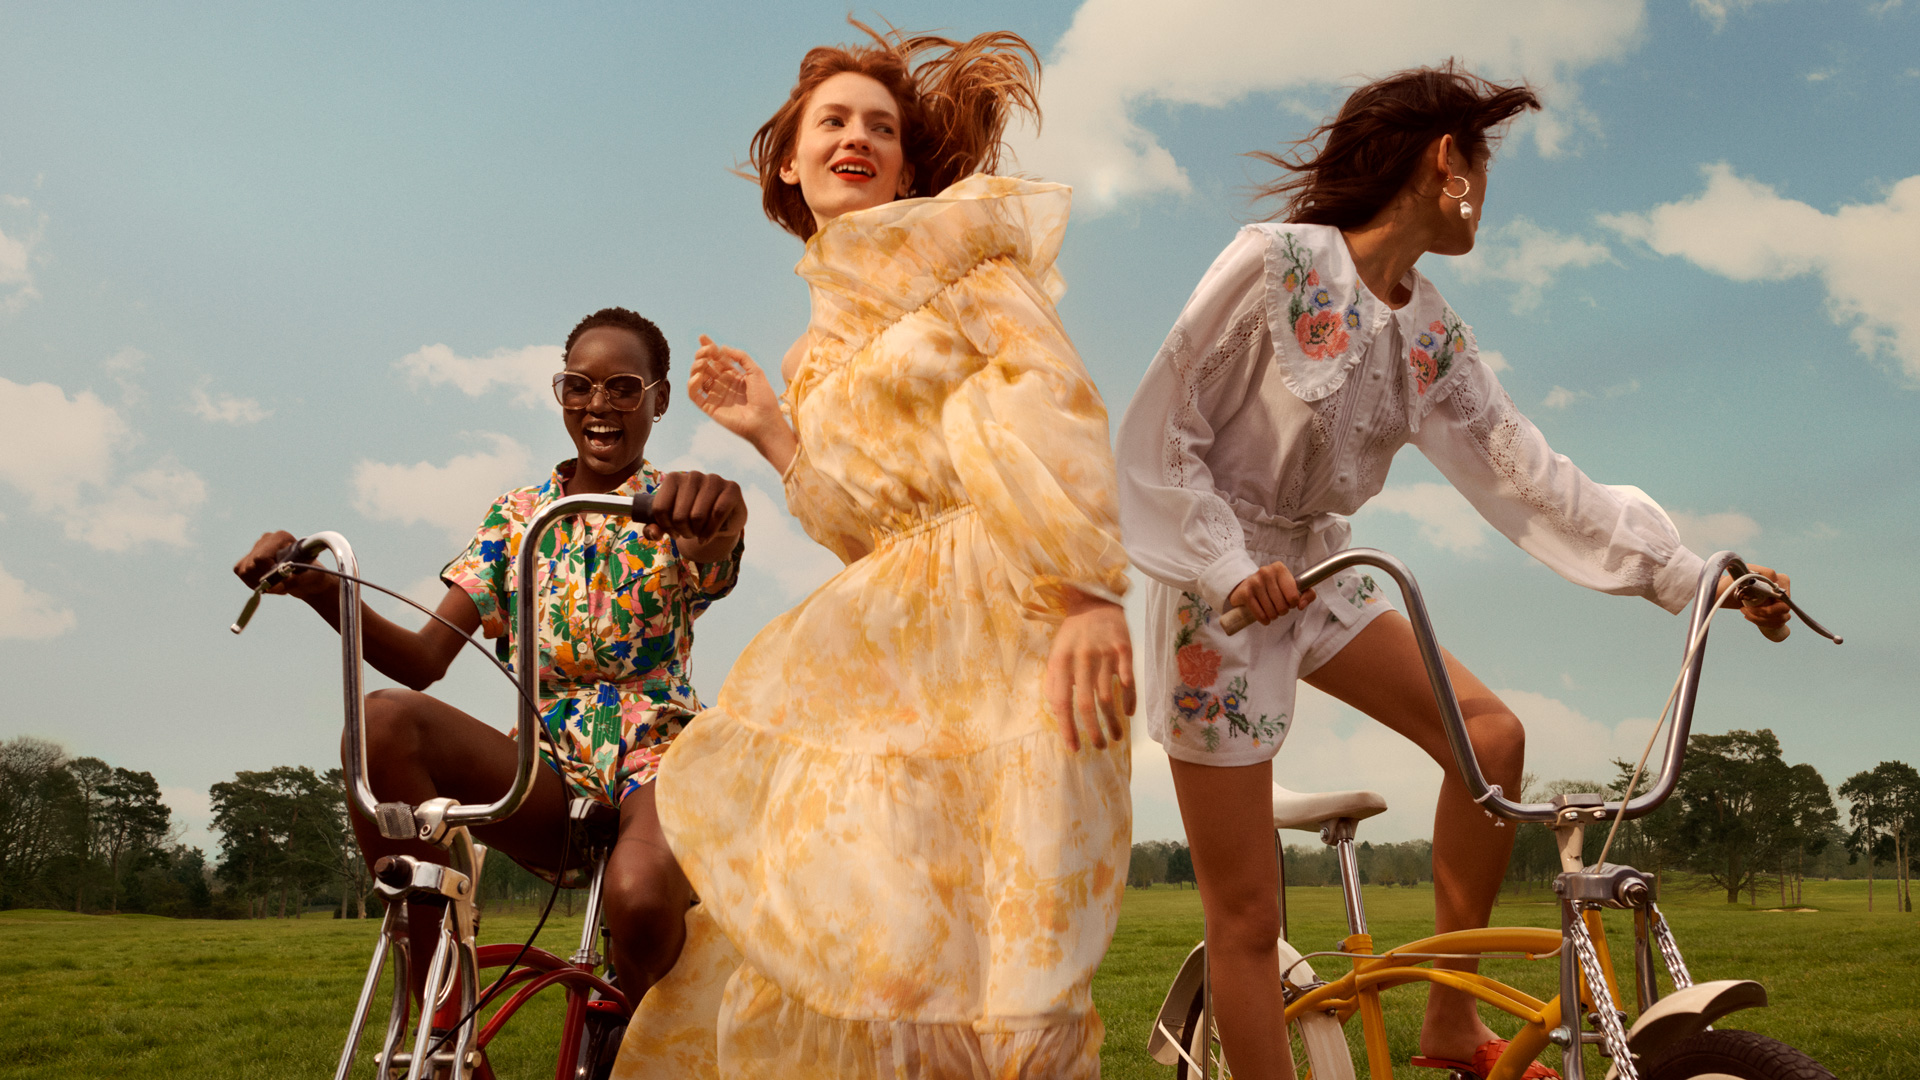 Four models cycle through the countryside